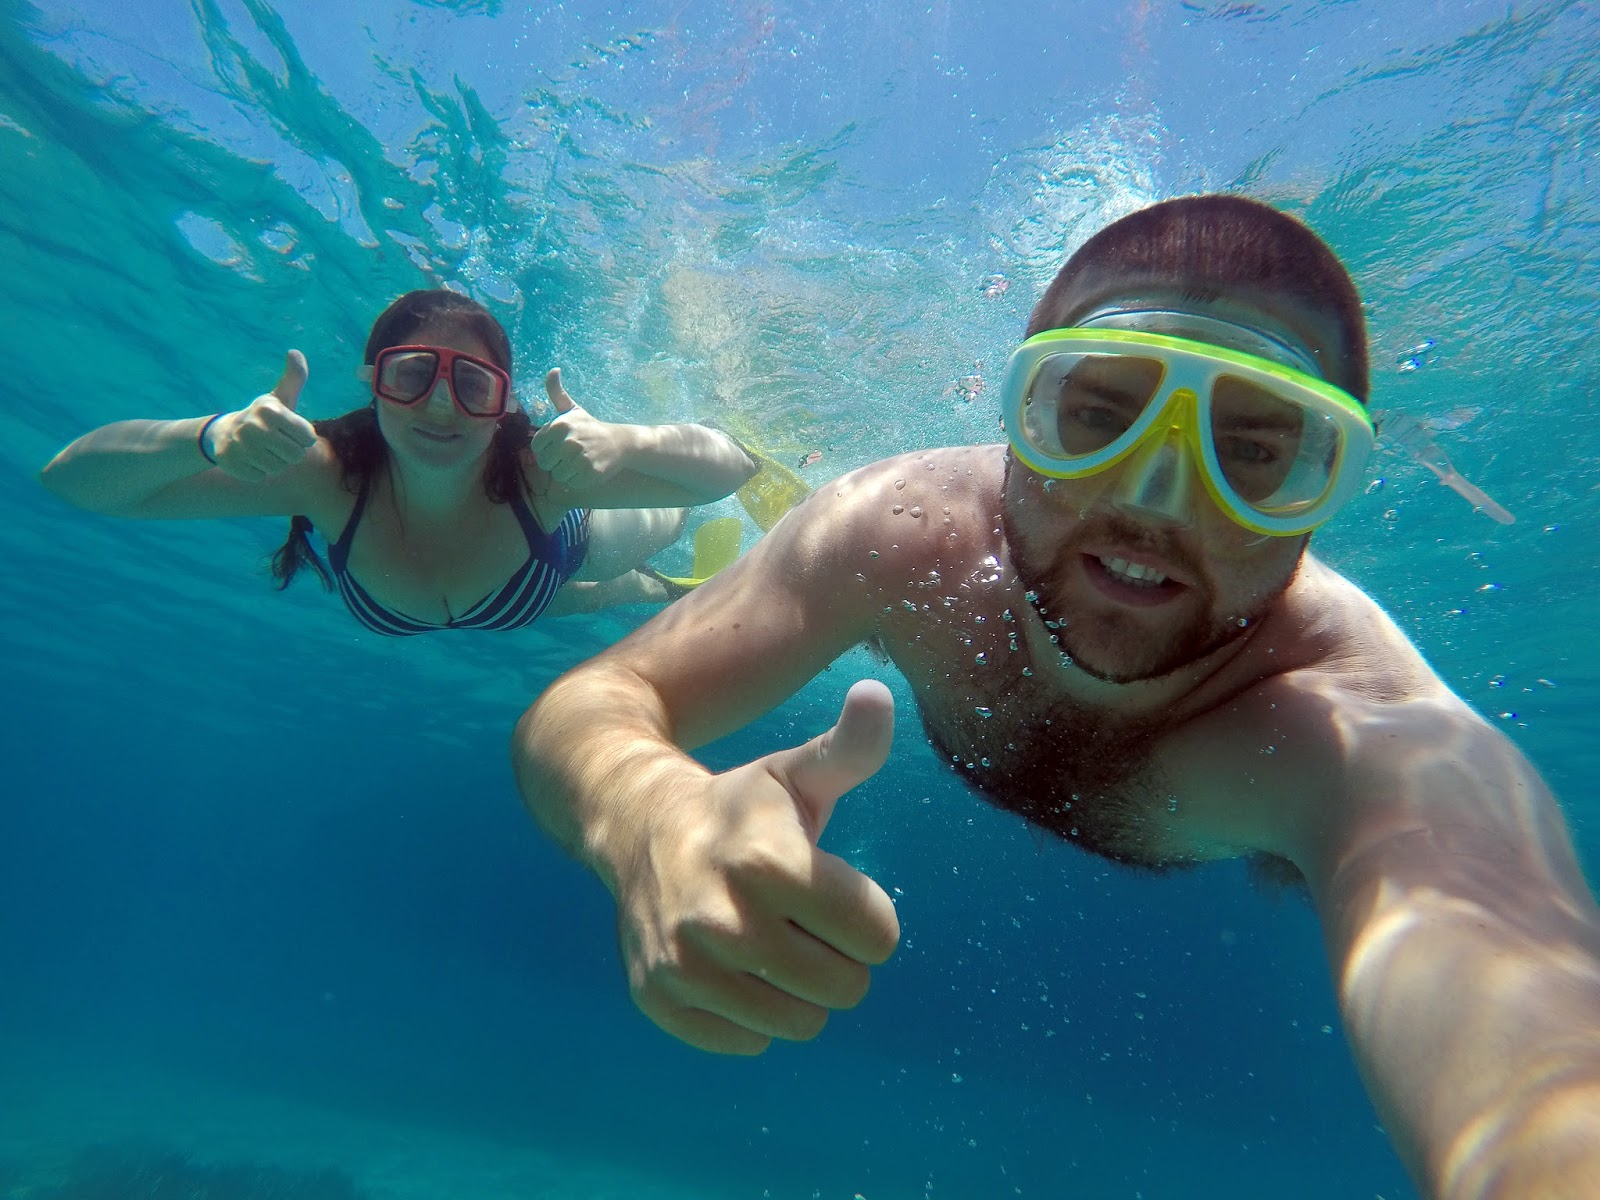 Snorkelling in Crystal Clear Water in Turkey